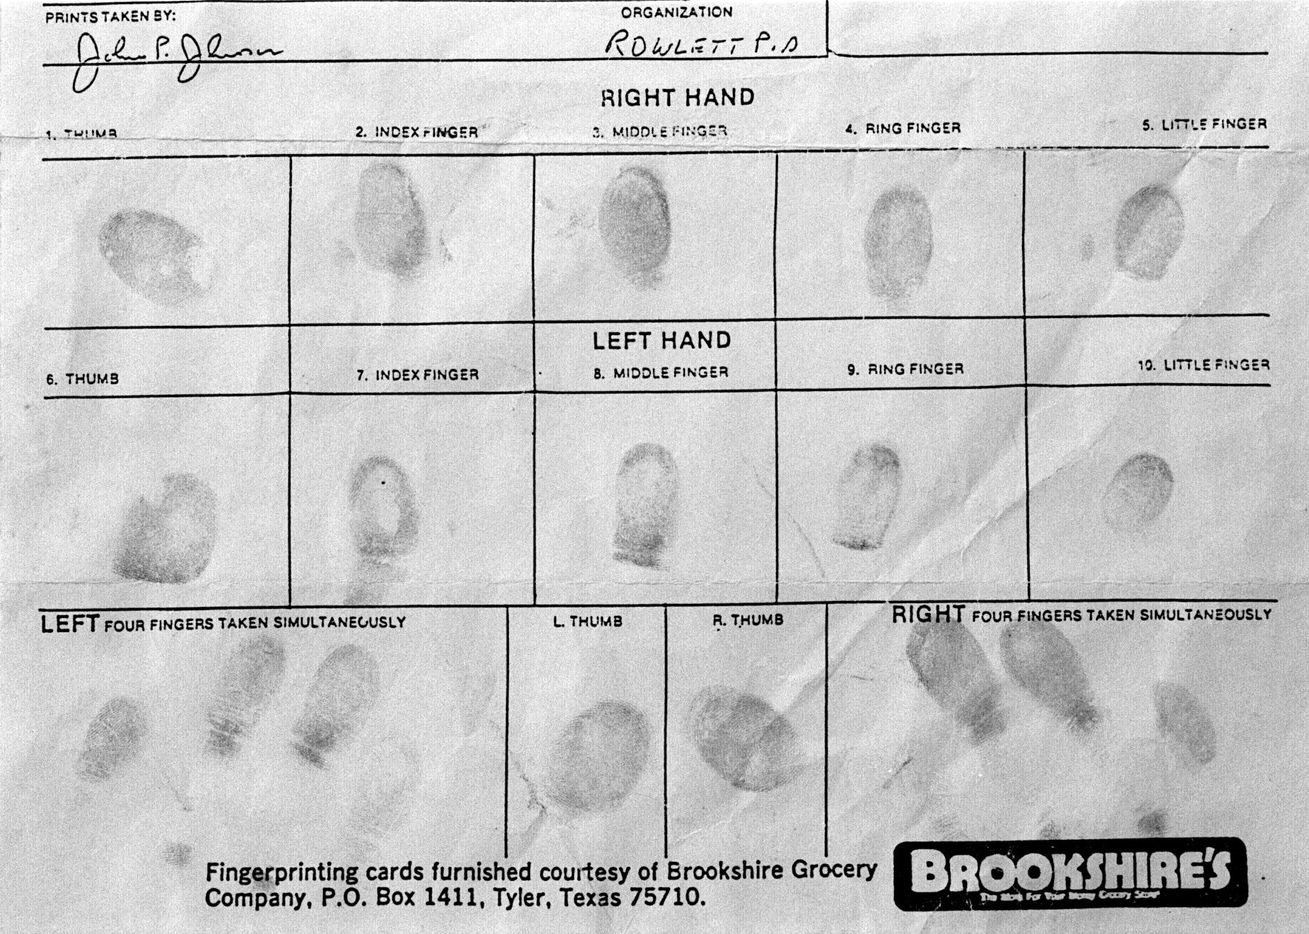 This fingerprint document, reportedly to show the fingerprints of Devon Routier, was copied in the law office of Stephen Cooper.